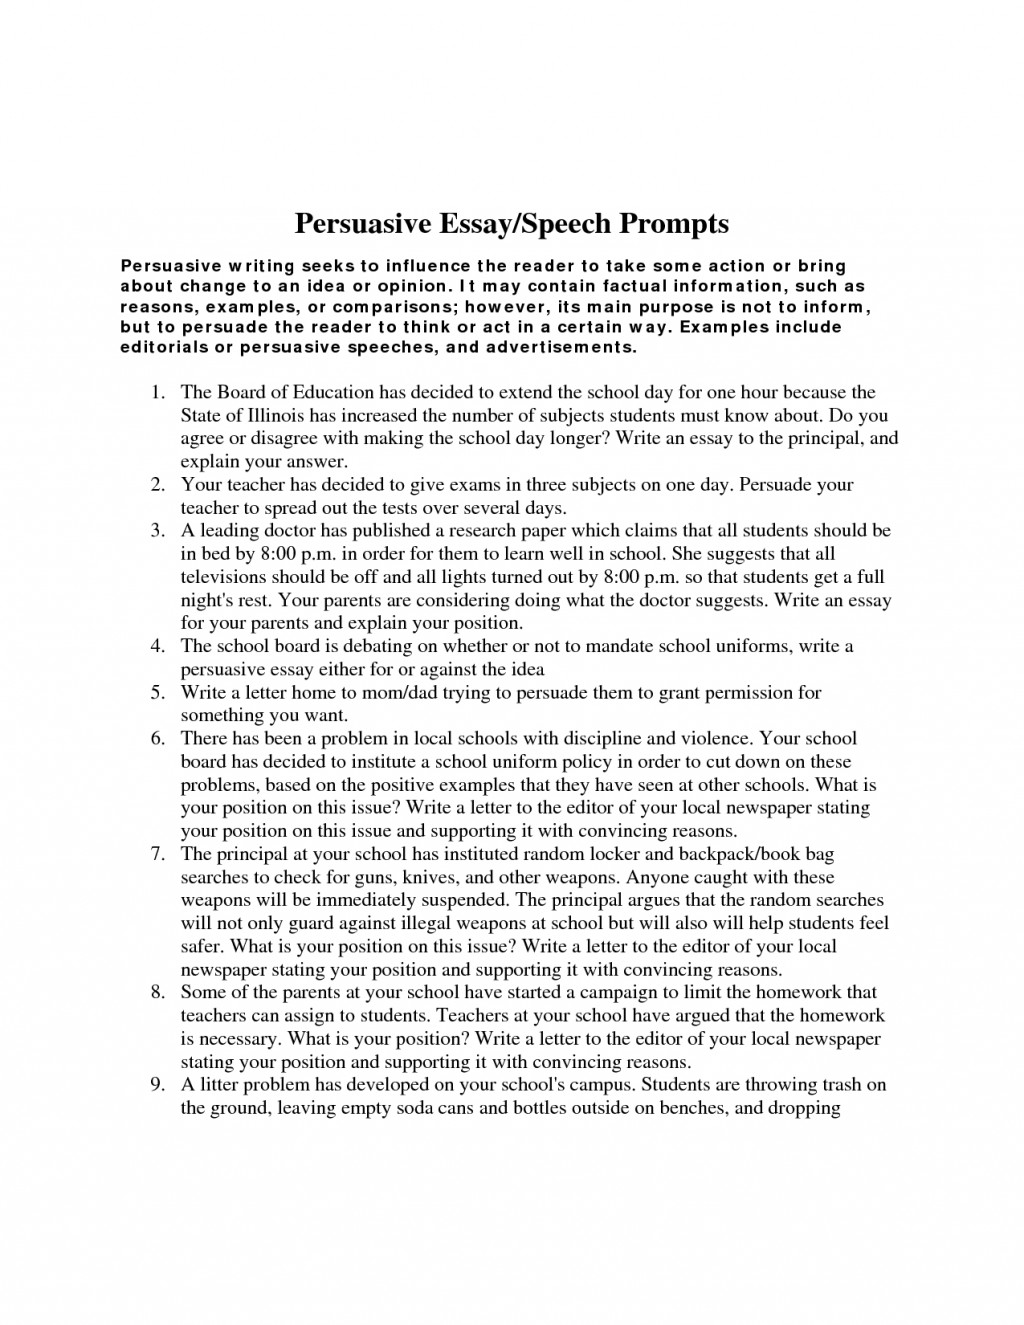 012 Essay Example Persuasive Prompts Informative Remarkable Topics For 4th Grade Expository High School 6th Graders Large